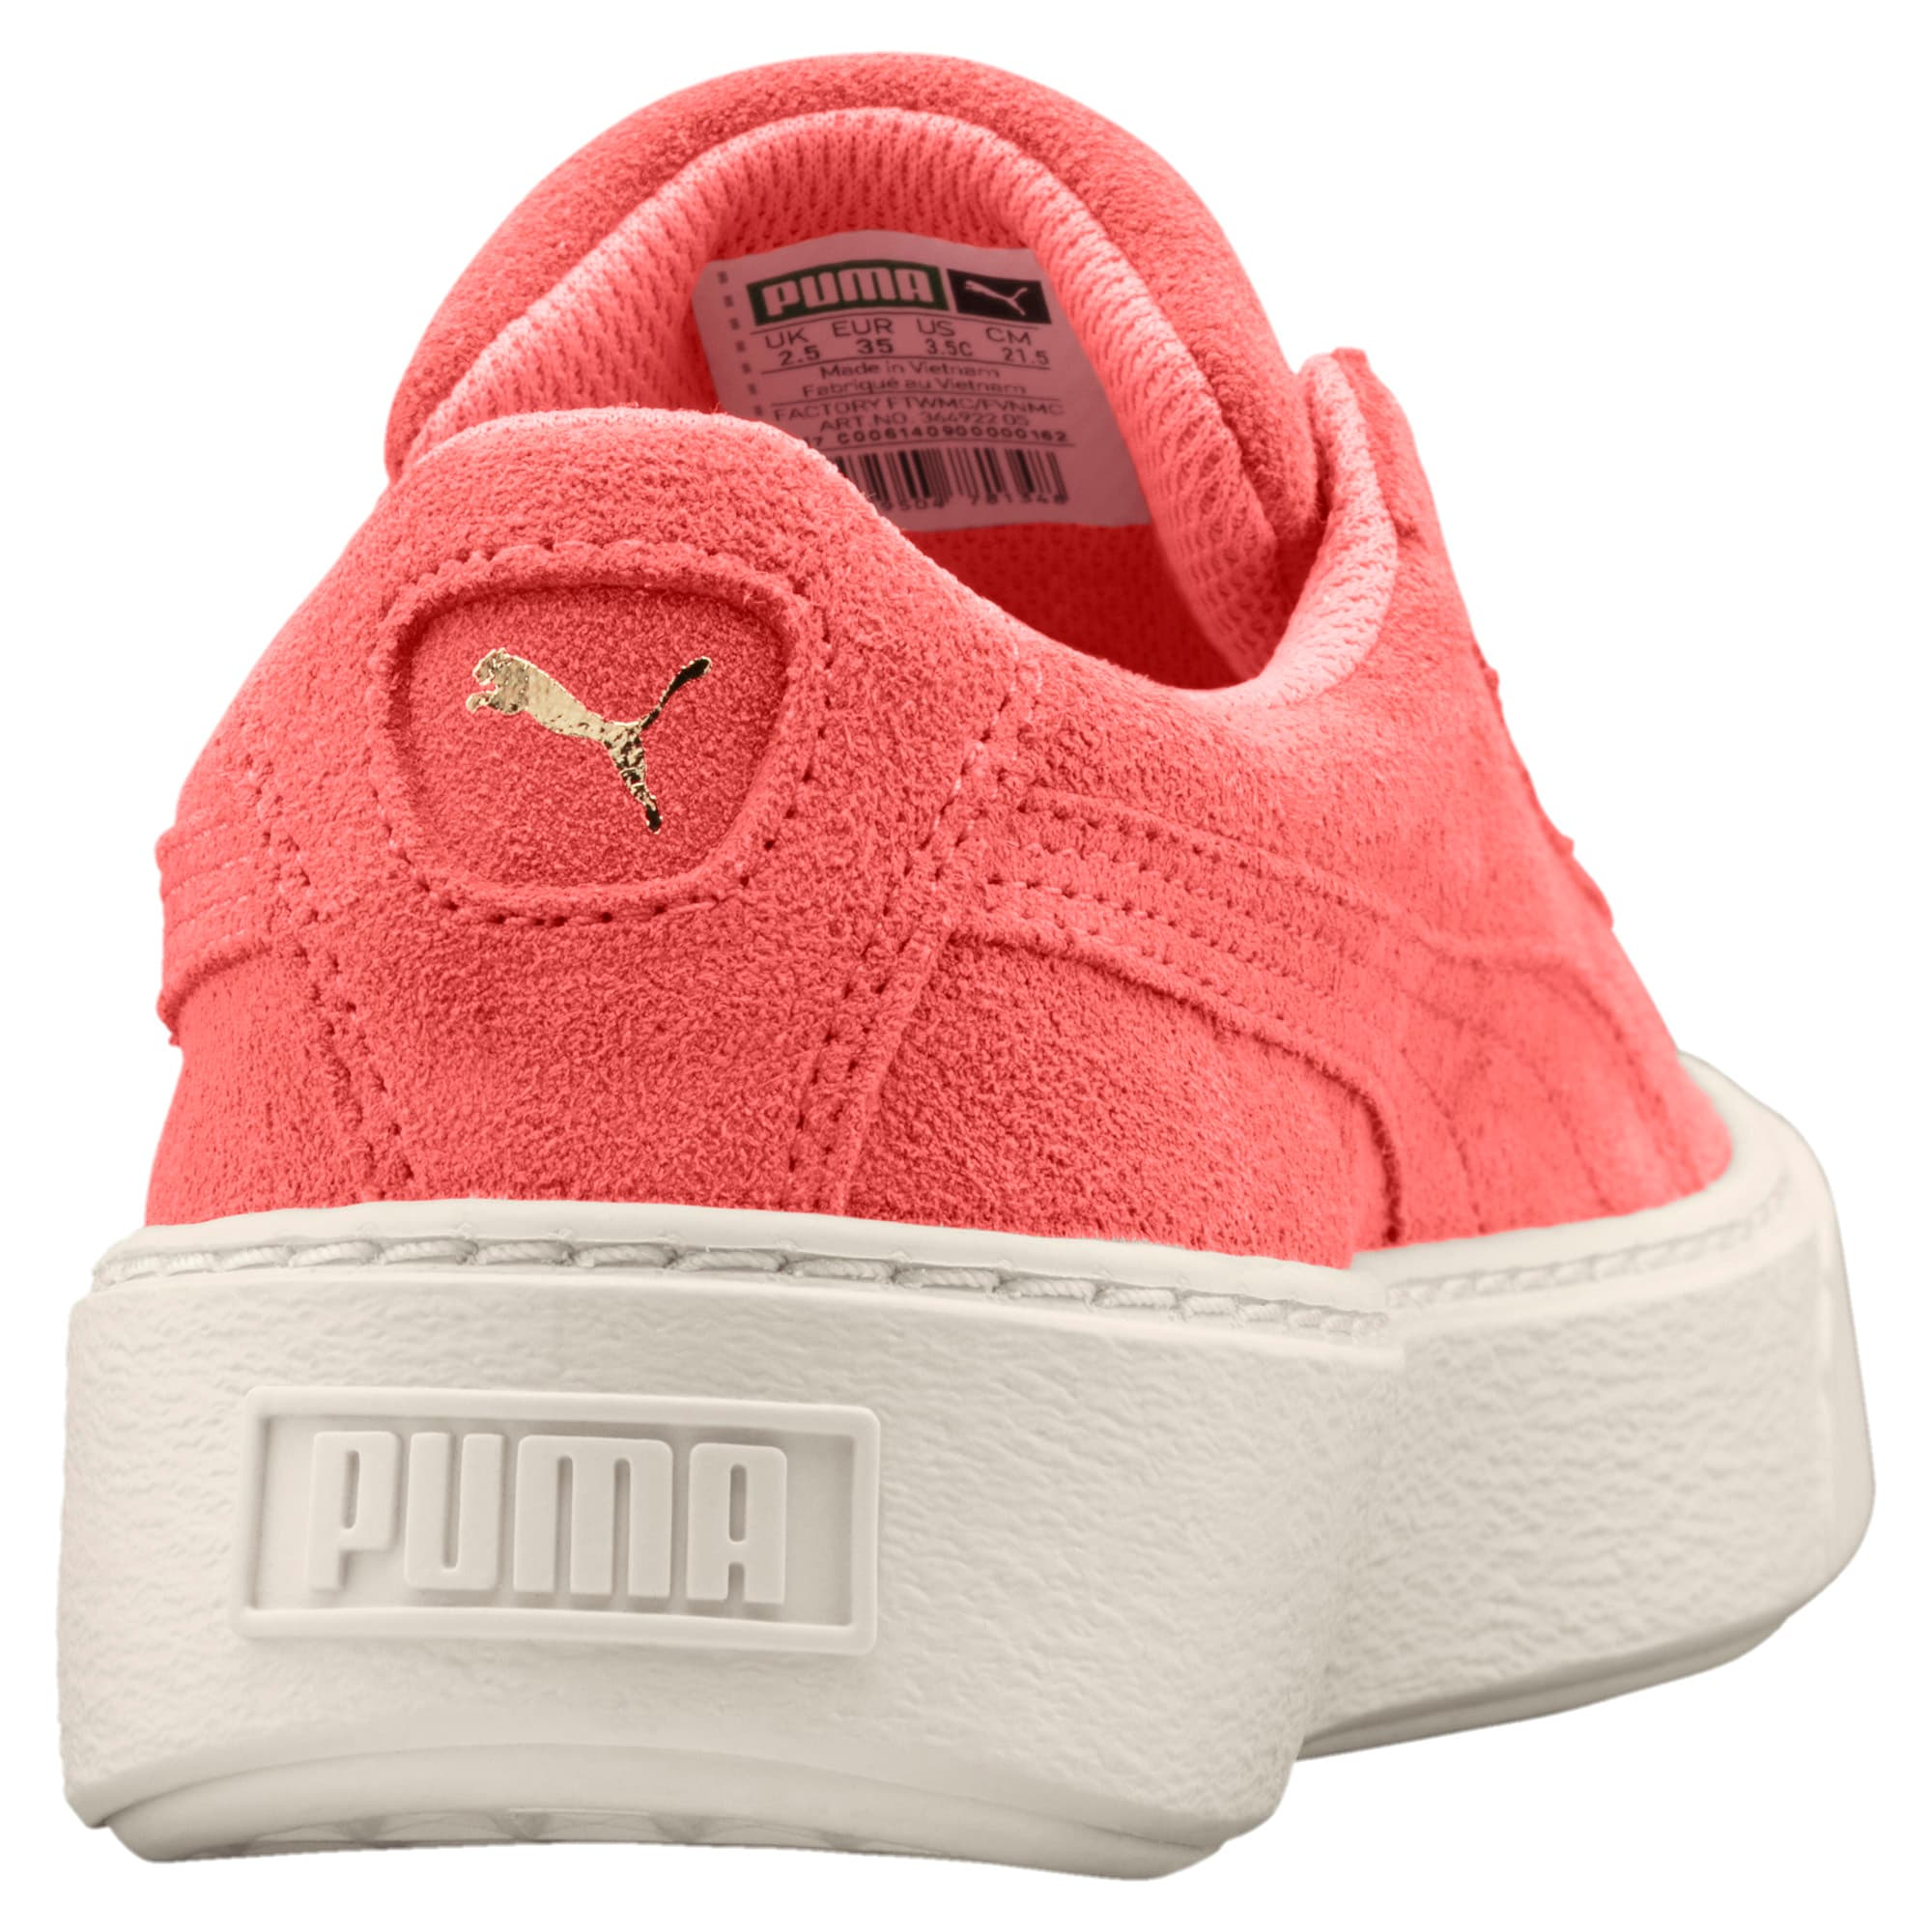 Thumbnail 4 of Suede Glam Girl's Sneakers JR, Puma Team Gold-Shell Pink, medium